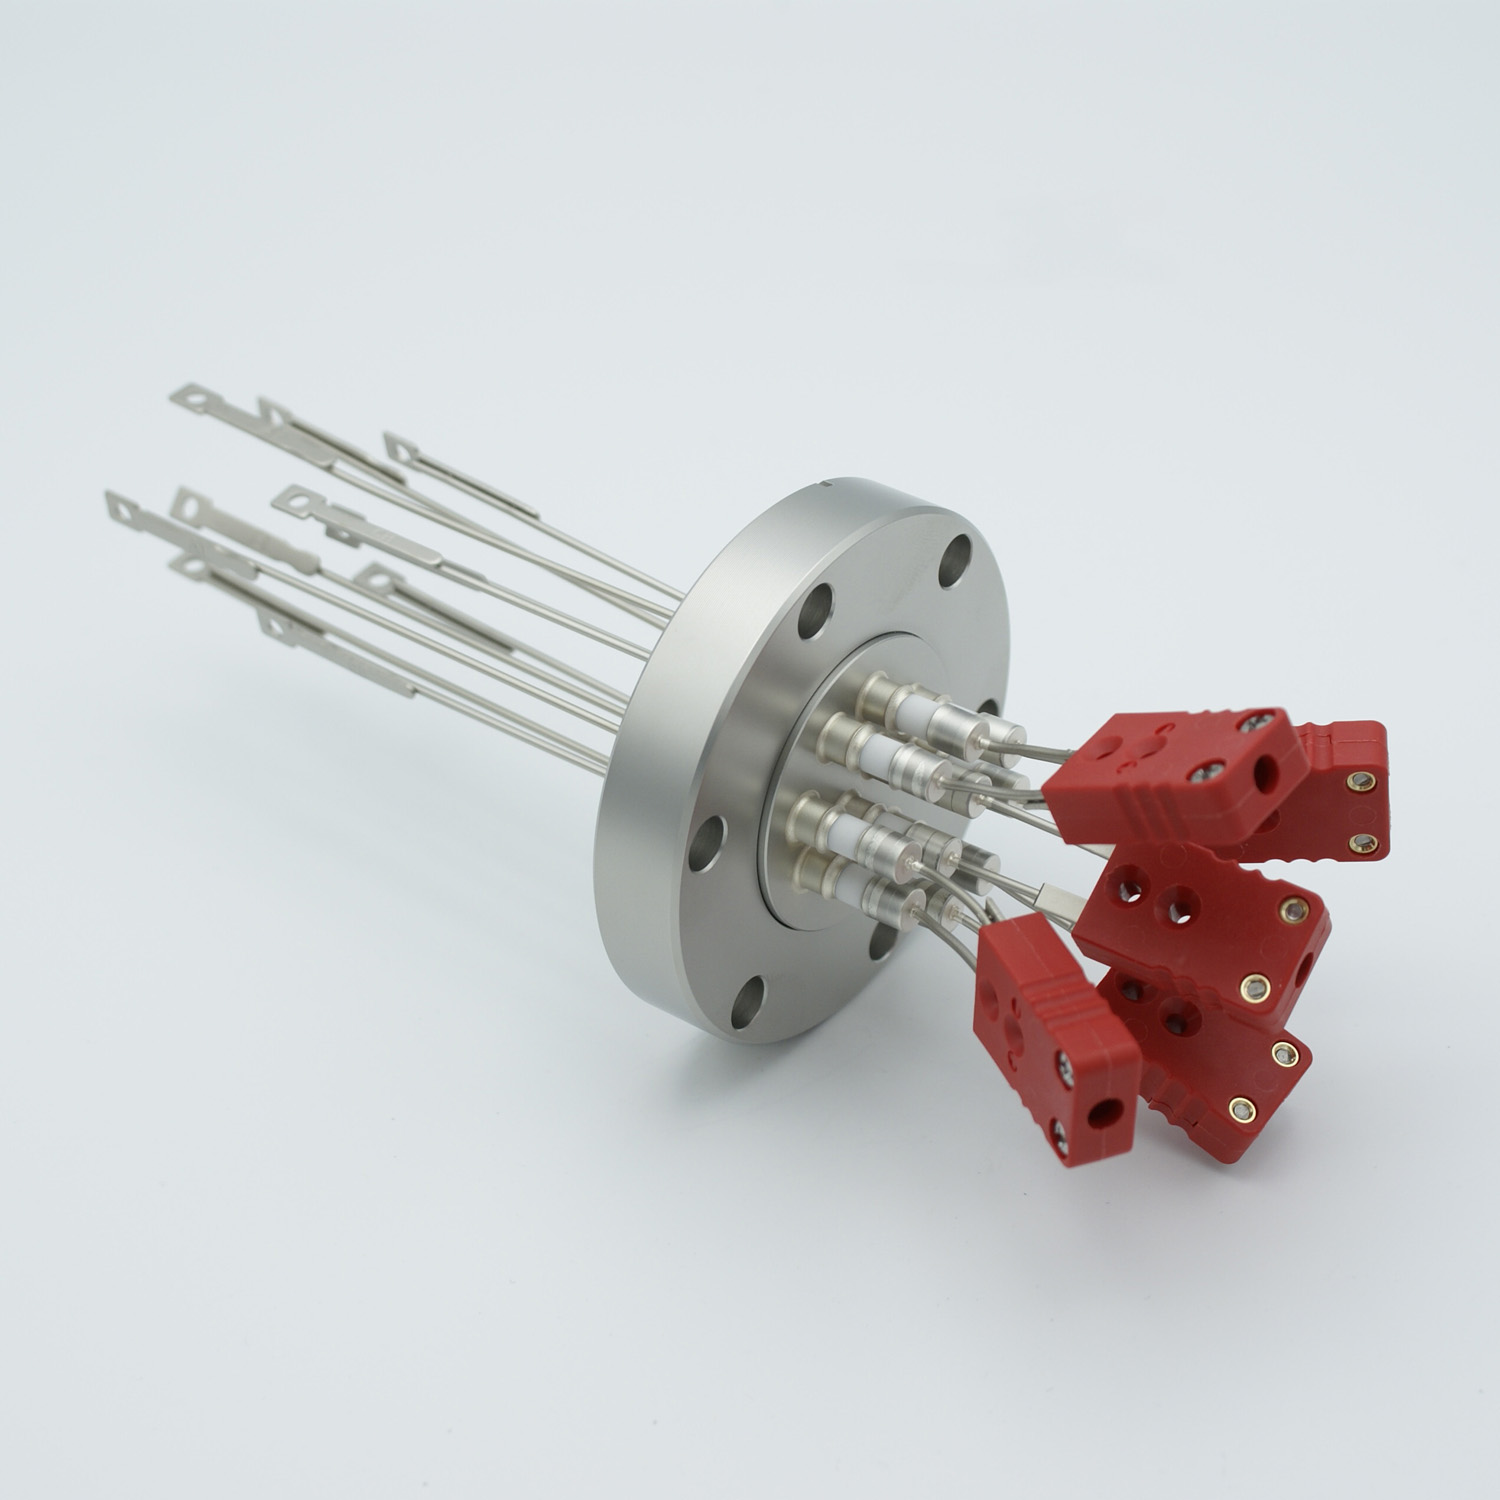 5 pair Thermocouple type-C feedthrough with both side connectors included, DN40CF flange